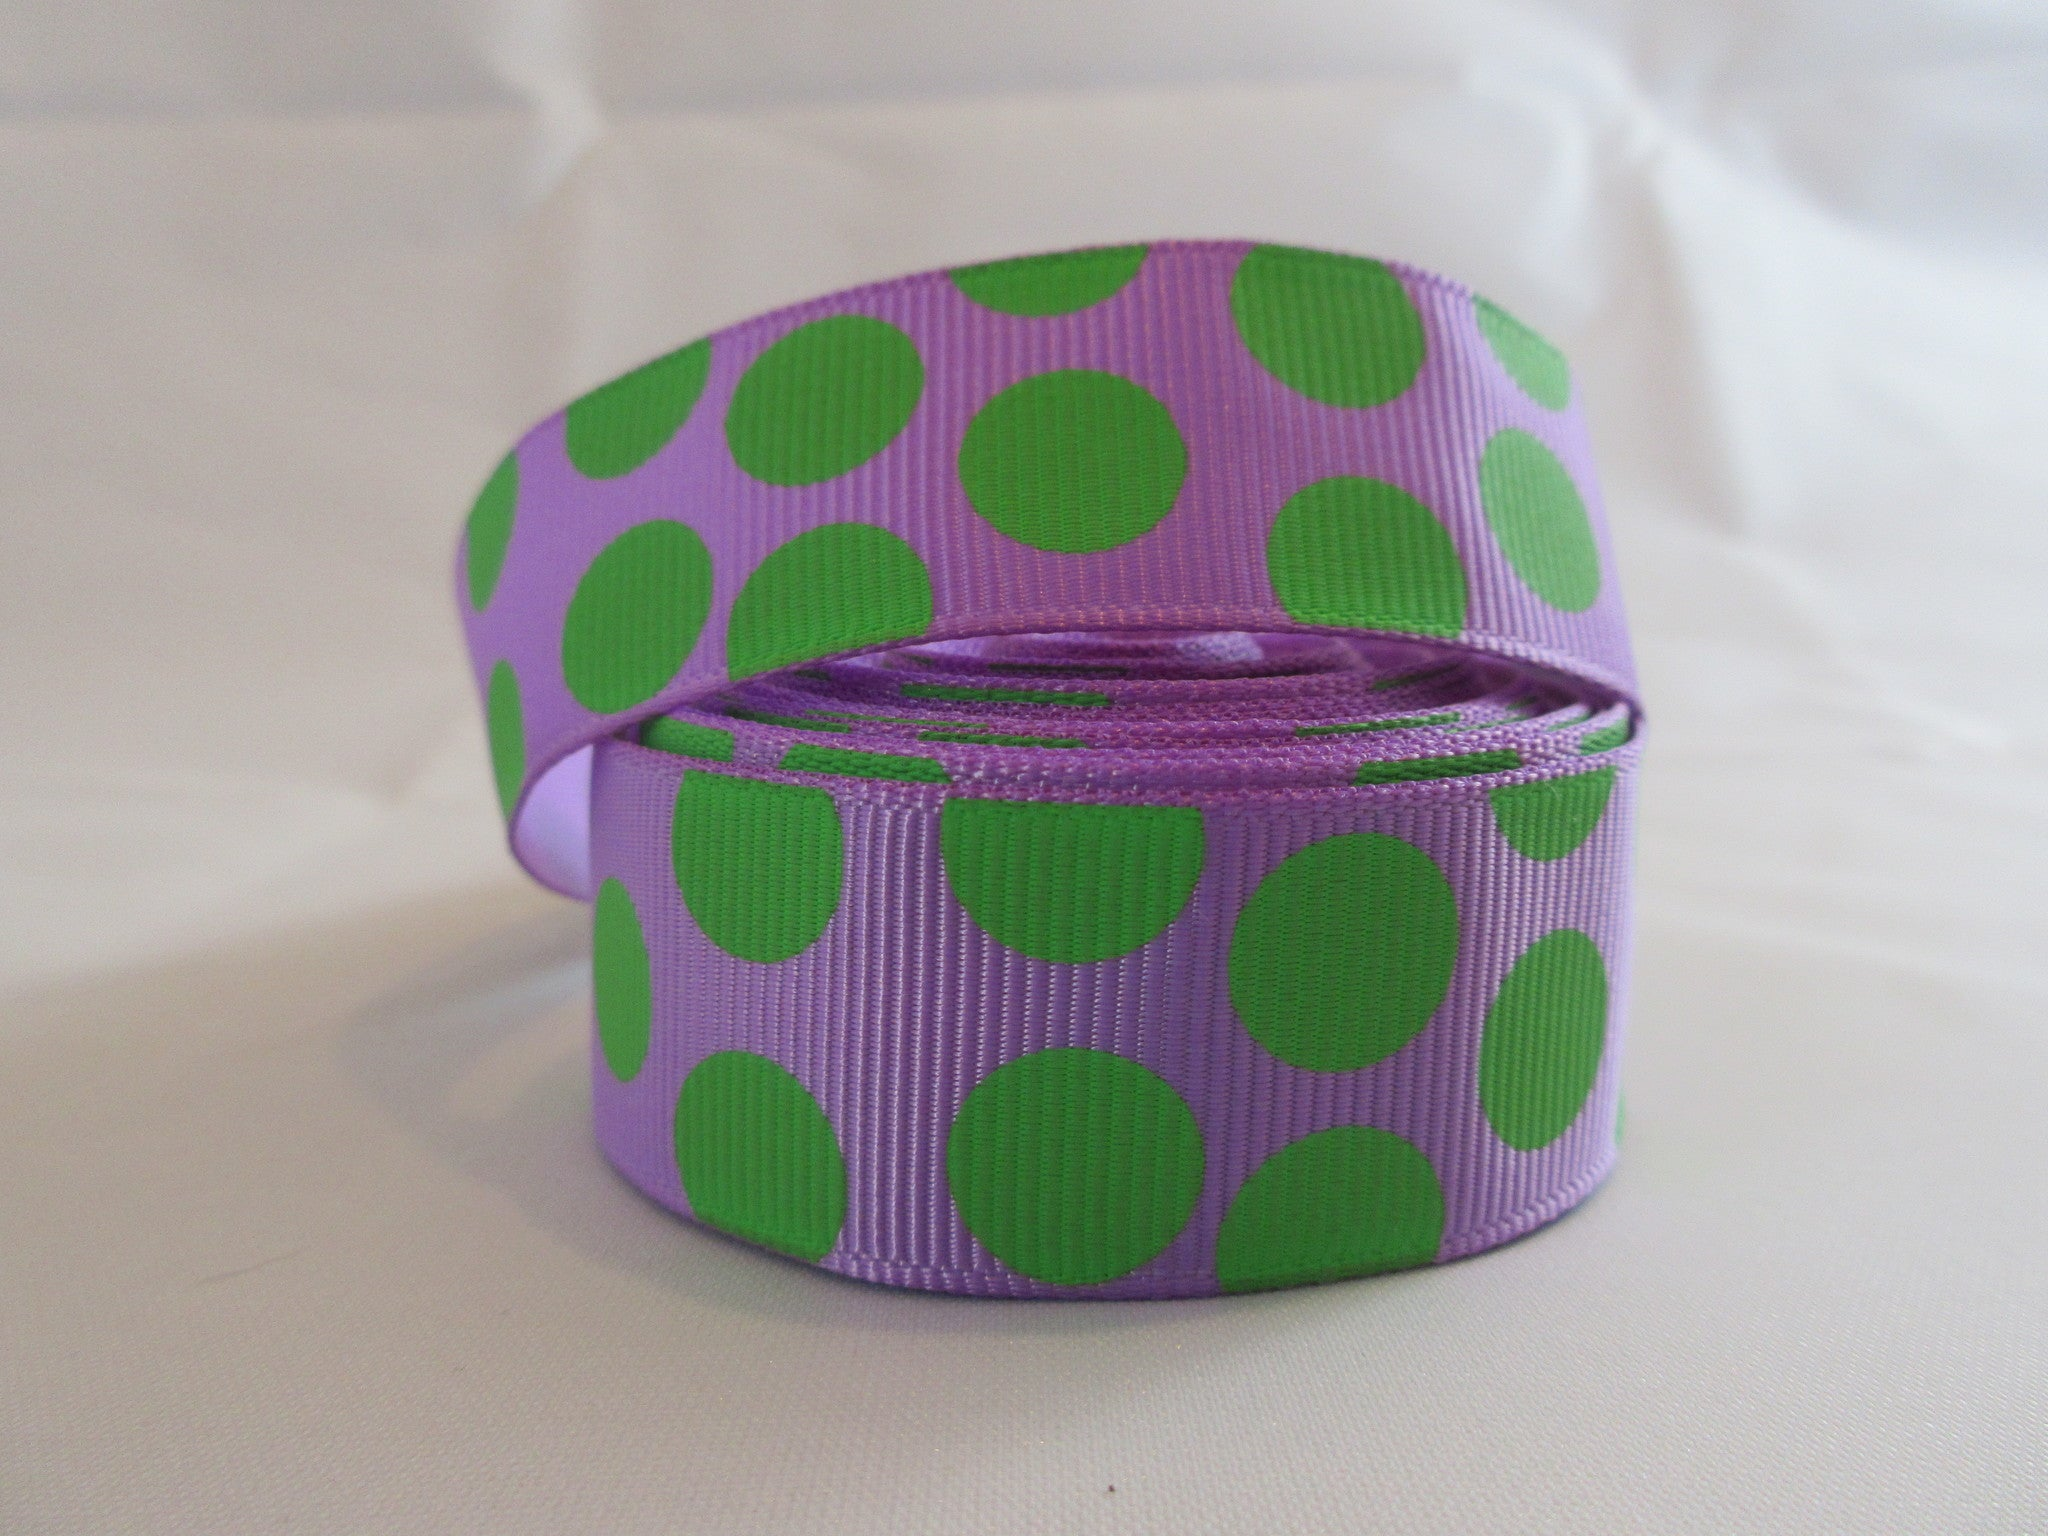 "1"" Green and Purple Polks Dots Pig Harness - Penny and Hoover's Pig Pen"